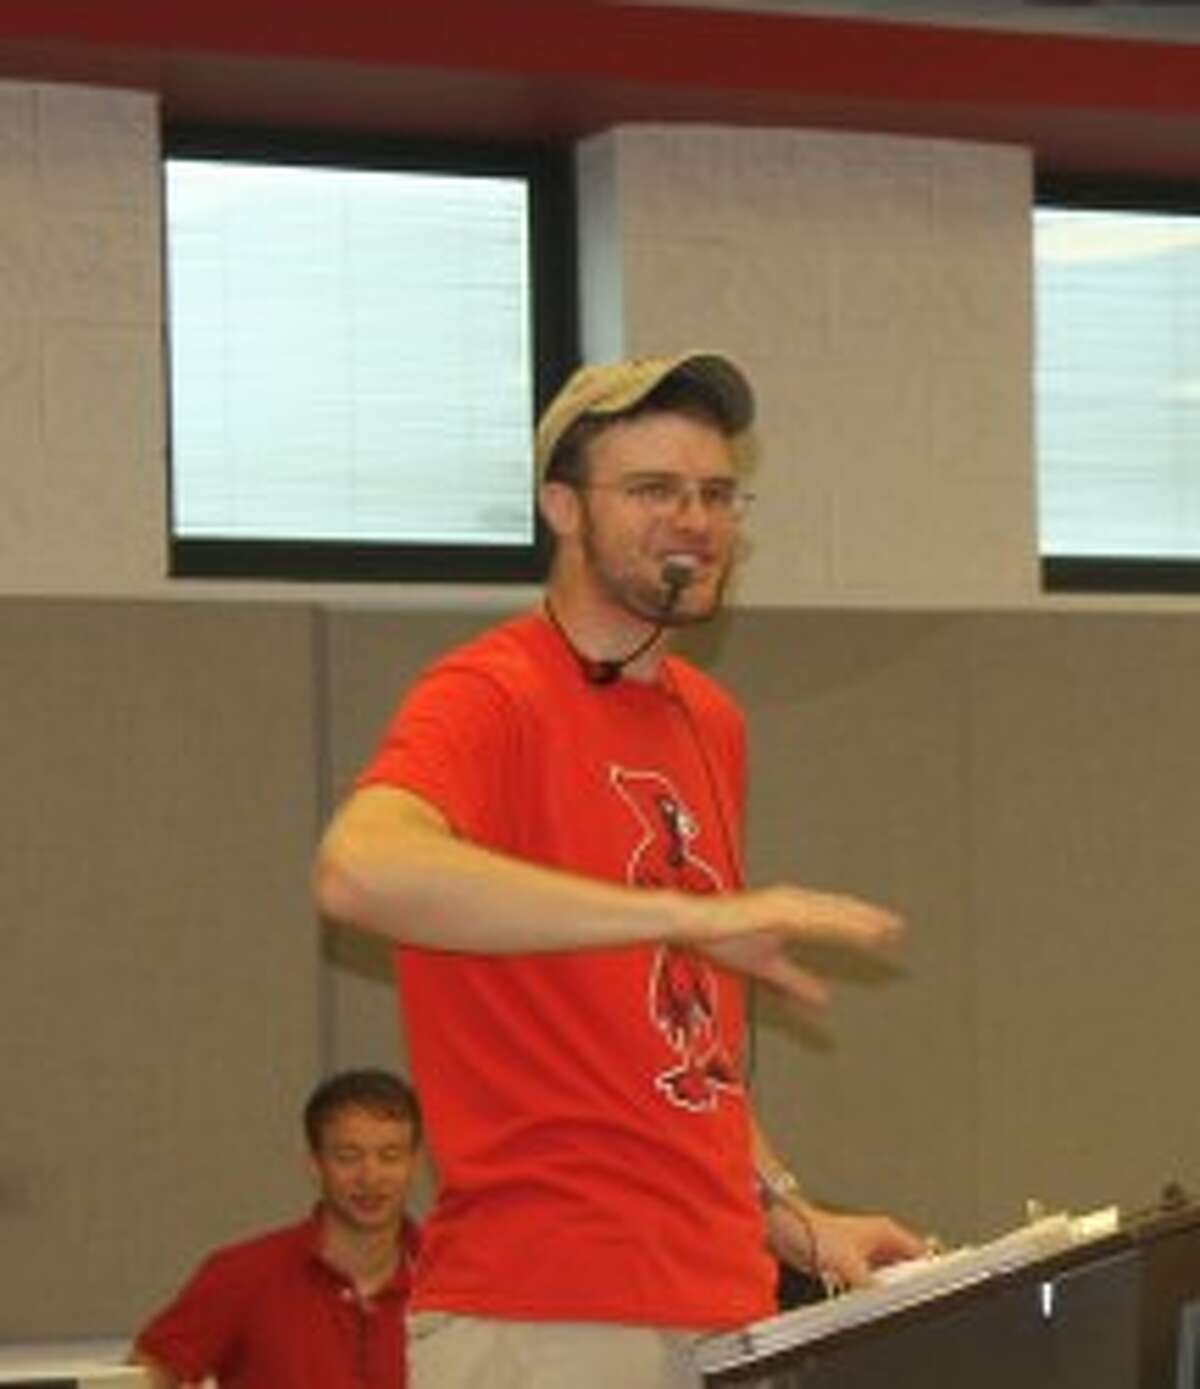 """photo_credit="""""""" MUSICAL GUIDE: Director Brian Balch leads the band in a warm-up on Tuesday. The band will perform a """"Methods of Madness"""" show at football games this fall."""